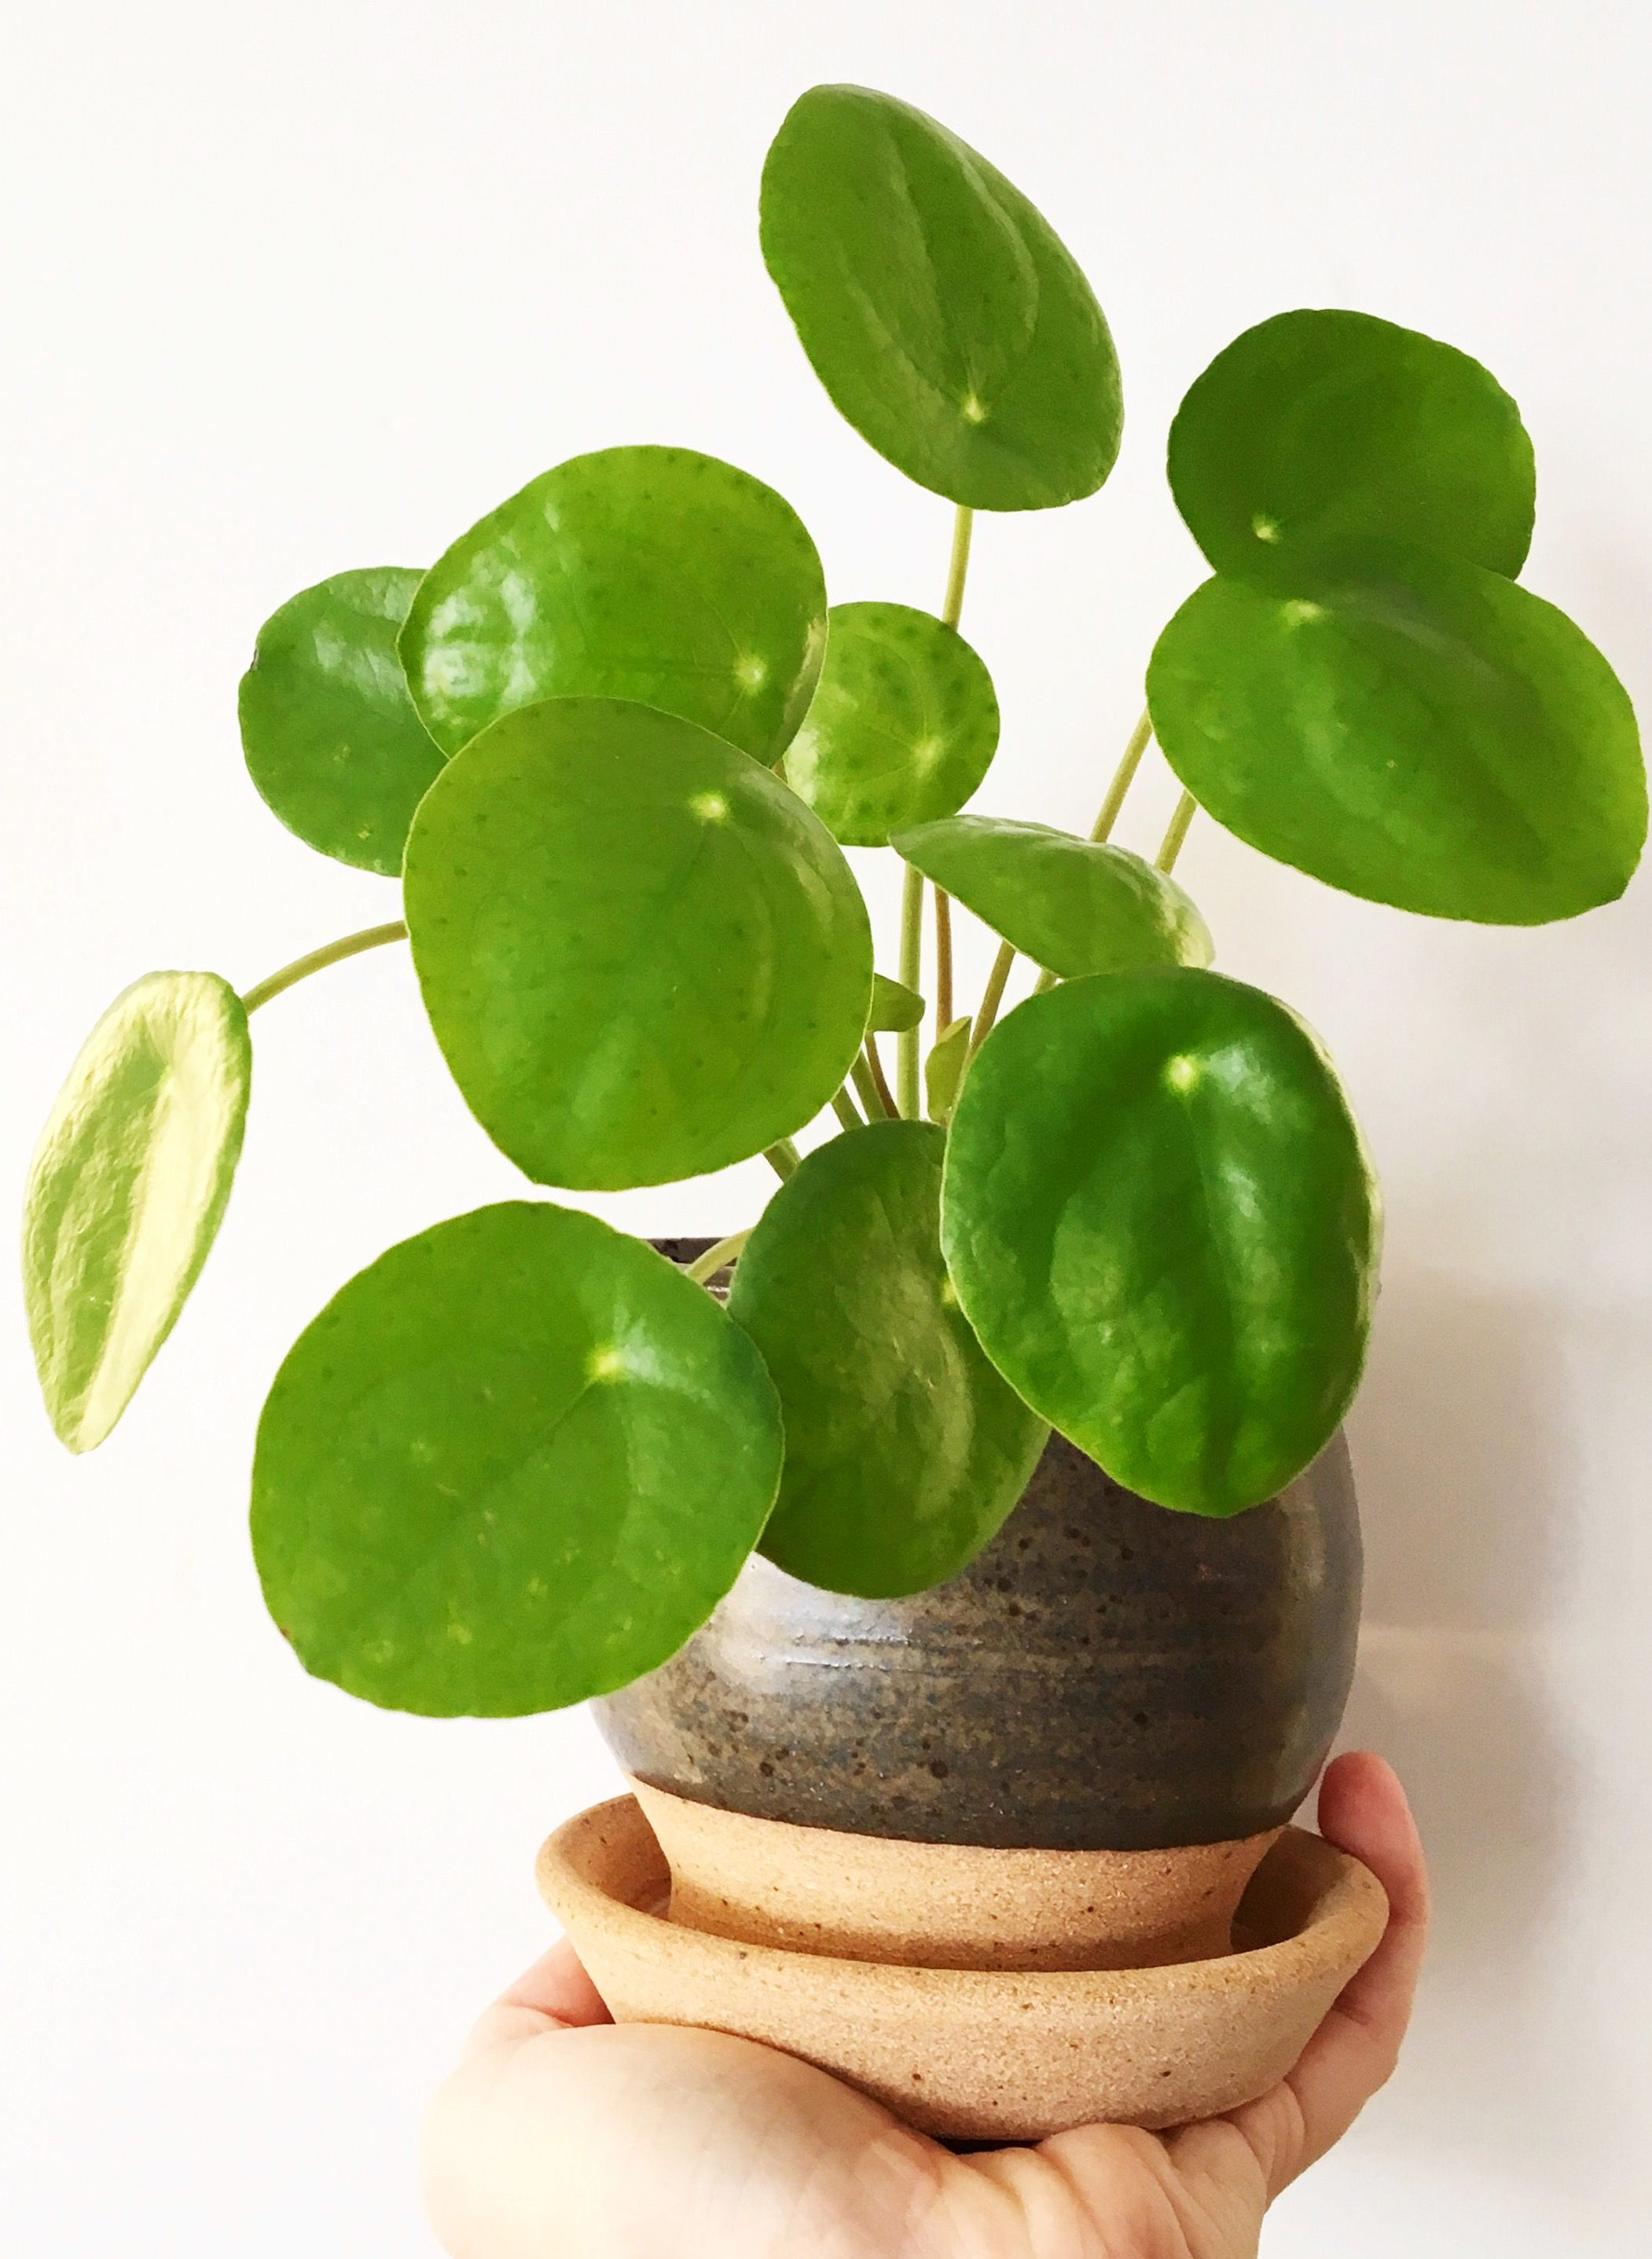 How To Care For Pilea Peperomioides | Plant Inspiration ... Zz House Plant Chinese Business on order birds of paradise plant, zamiifolia house plant, spider house plant, fig house plant, houseplants plant, croton house plant, banana house plant, cast iron plant, rubber house plant, hydrangea house plant, peperomia house plant, fern house plant, zi zi plant, arrowhead house plant, umbrella house plant, avocado house plant, eternity plant, house plant identification succulent plant,